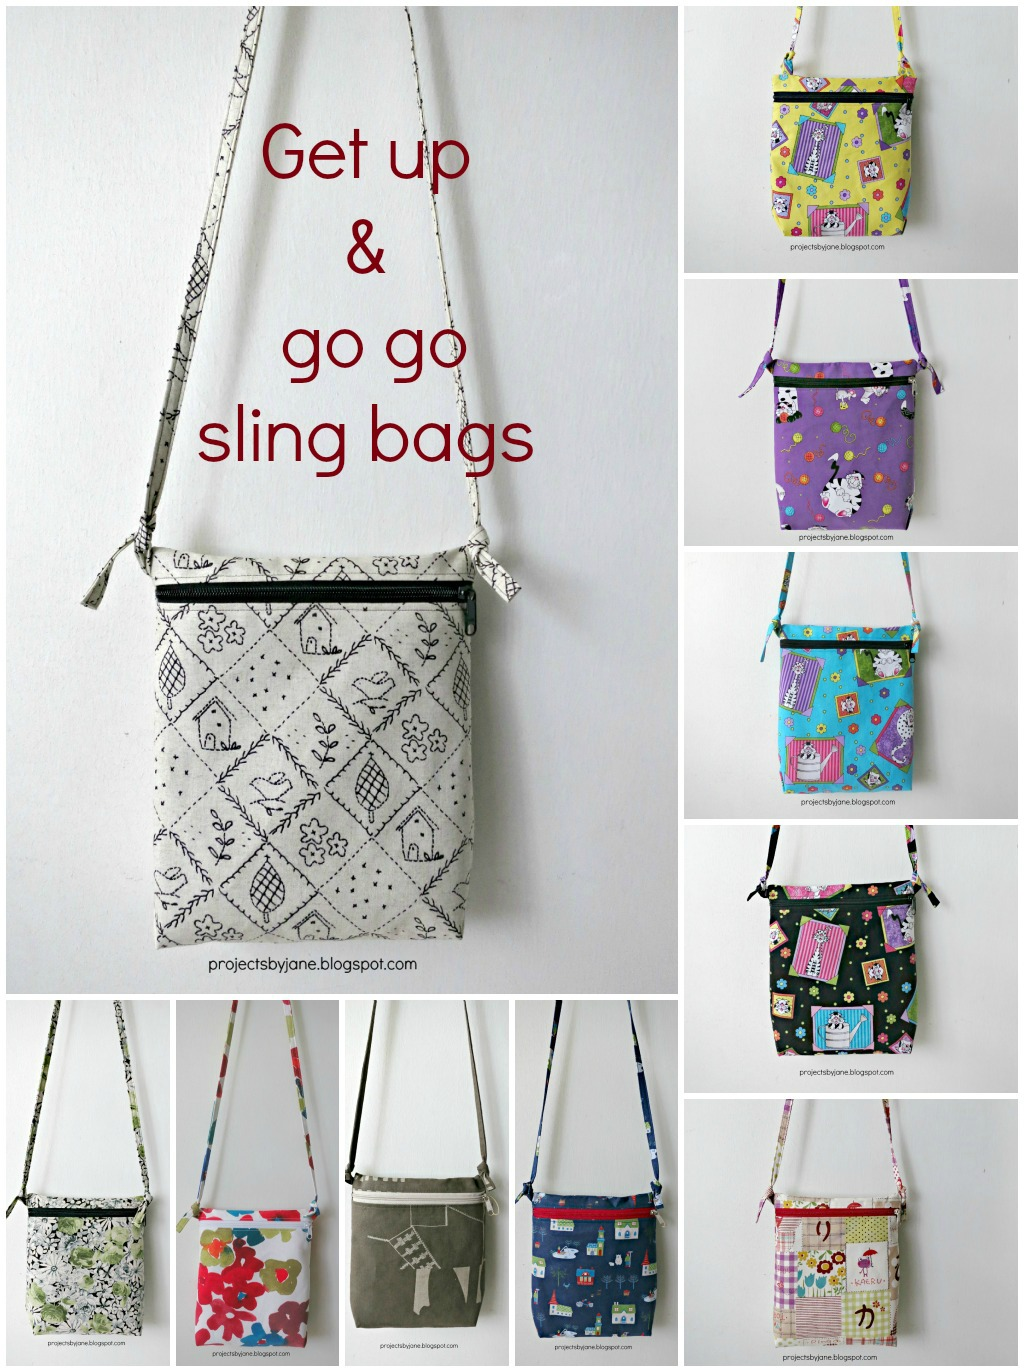 I have sling bags coming out of my butt | Projects by Jane